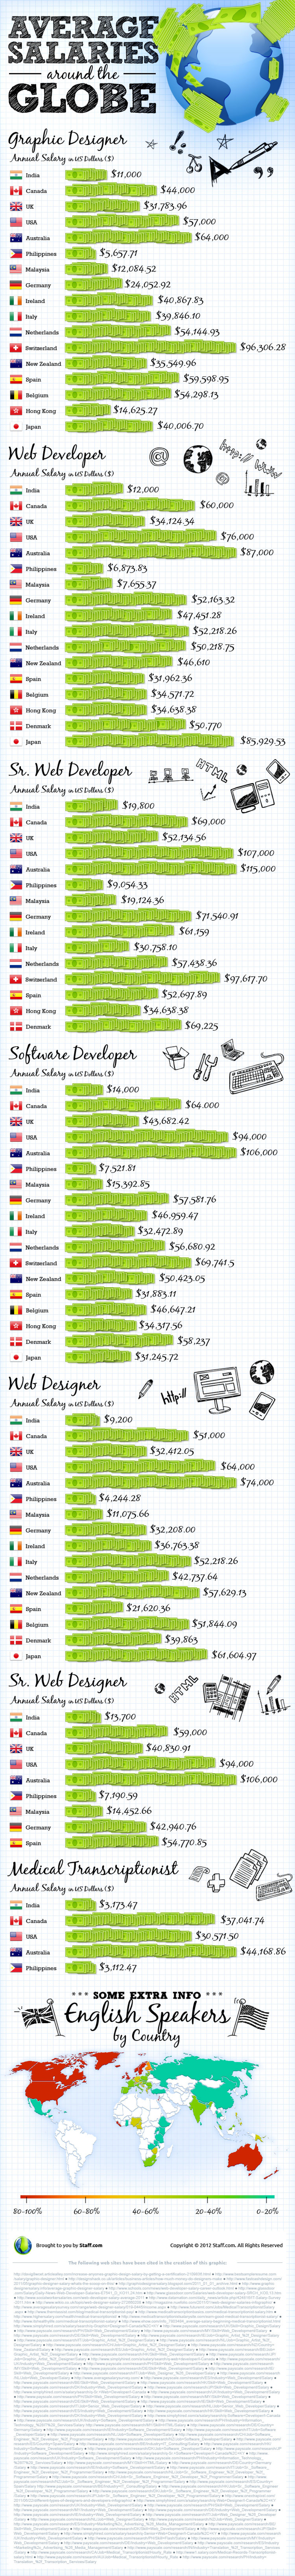 Salaries of web developers in India, the Philippines, USA and around the world Infographic